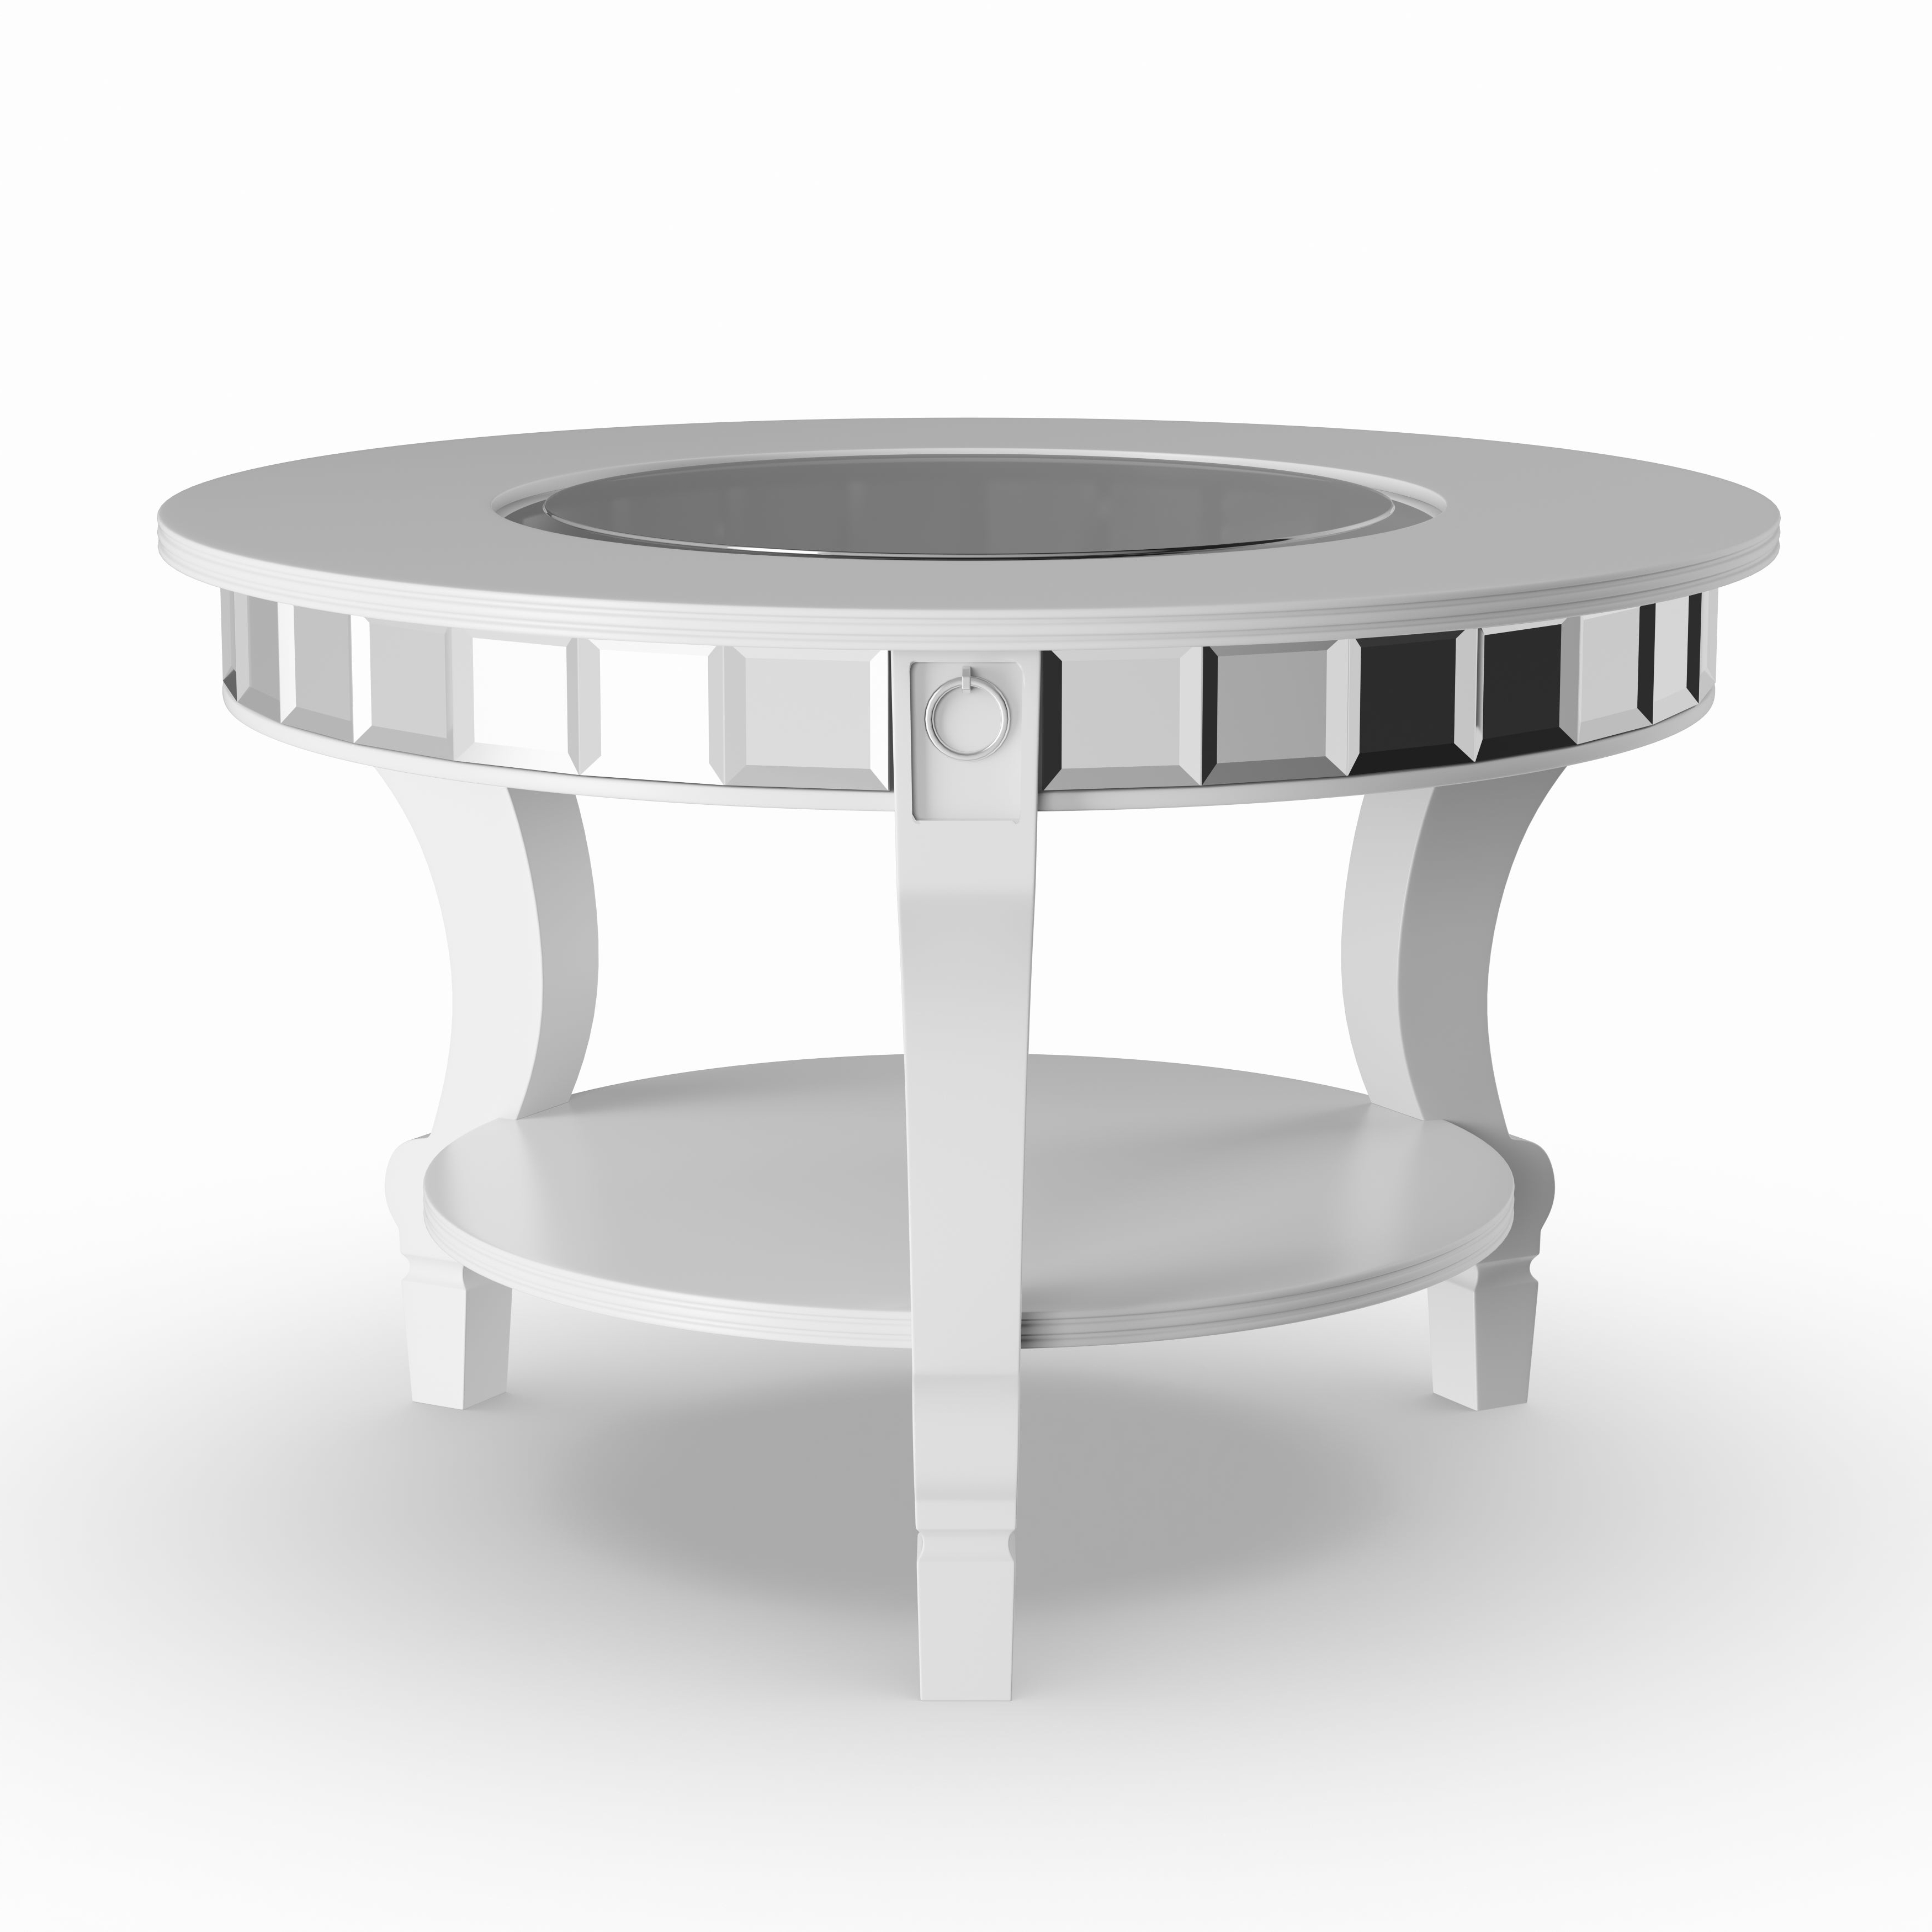 Silver Orchid Olivia Glam Mirrored Round Cocktail Table – Matte Silver With Regard To Widely Used Silver Orchid Olivia Glam Mirrored Round Cocktail Tables (View 4 of 20)